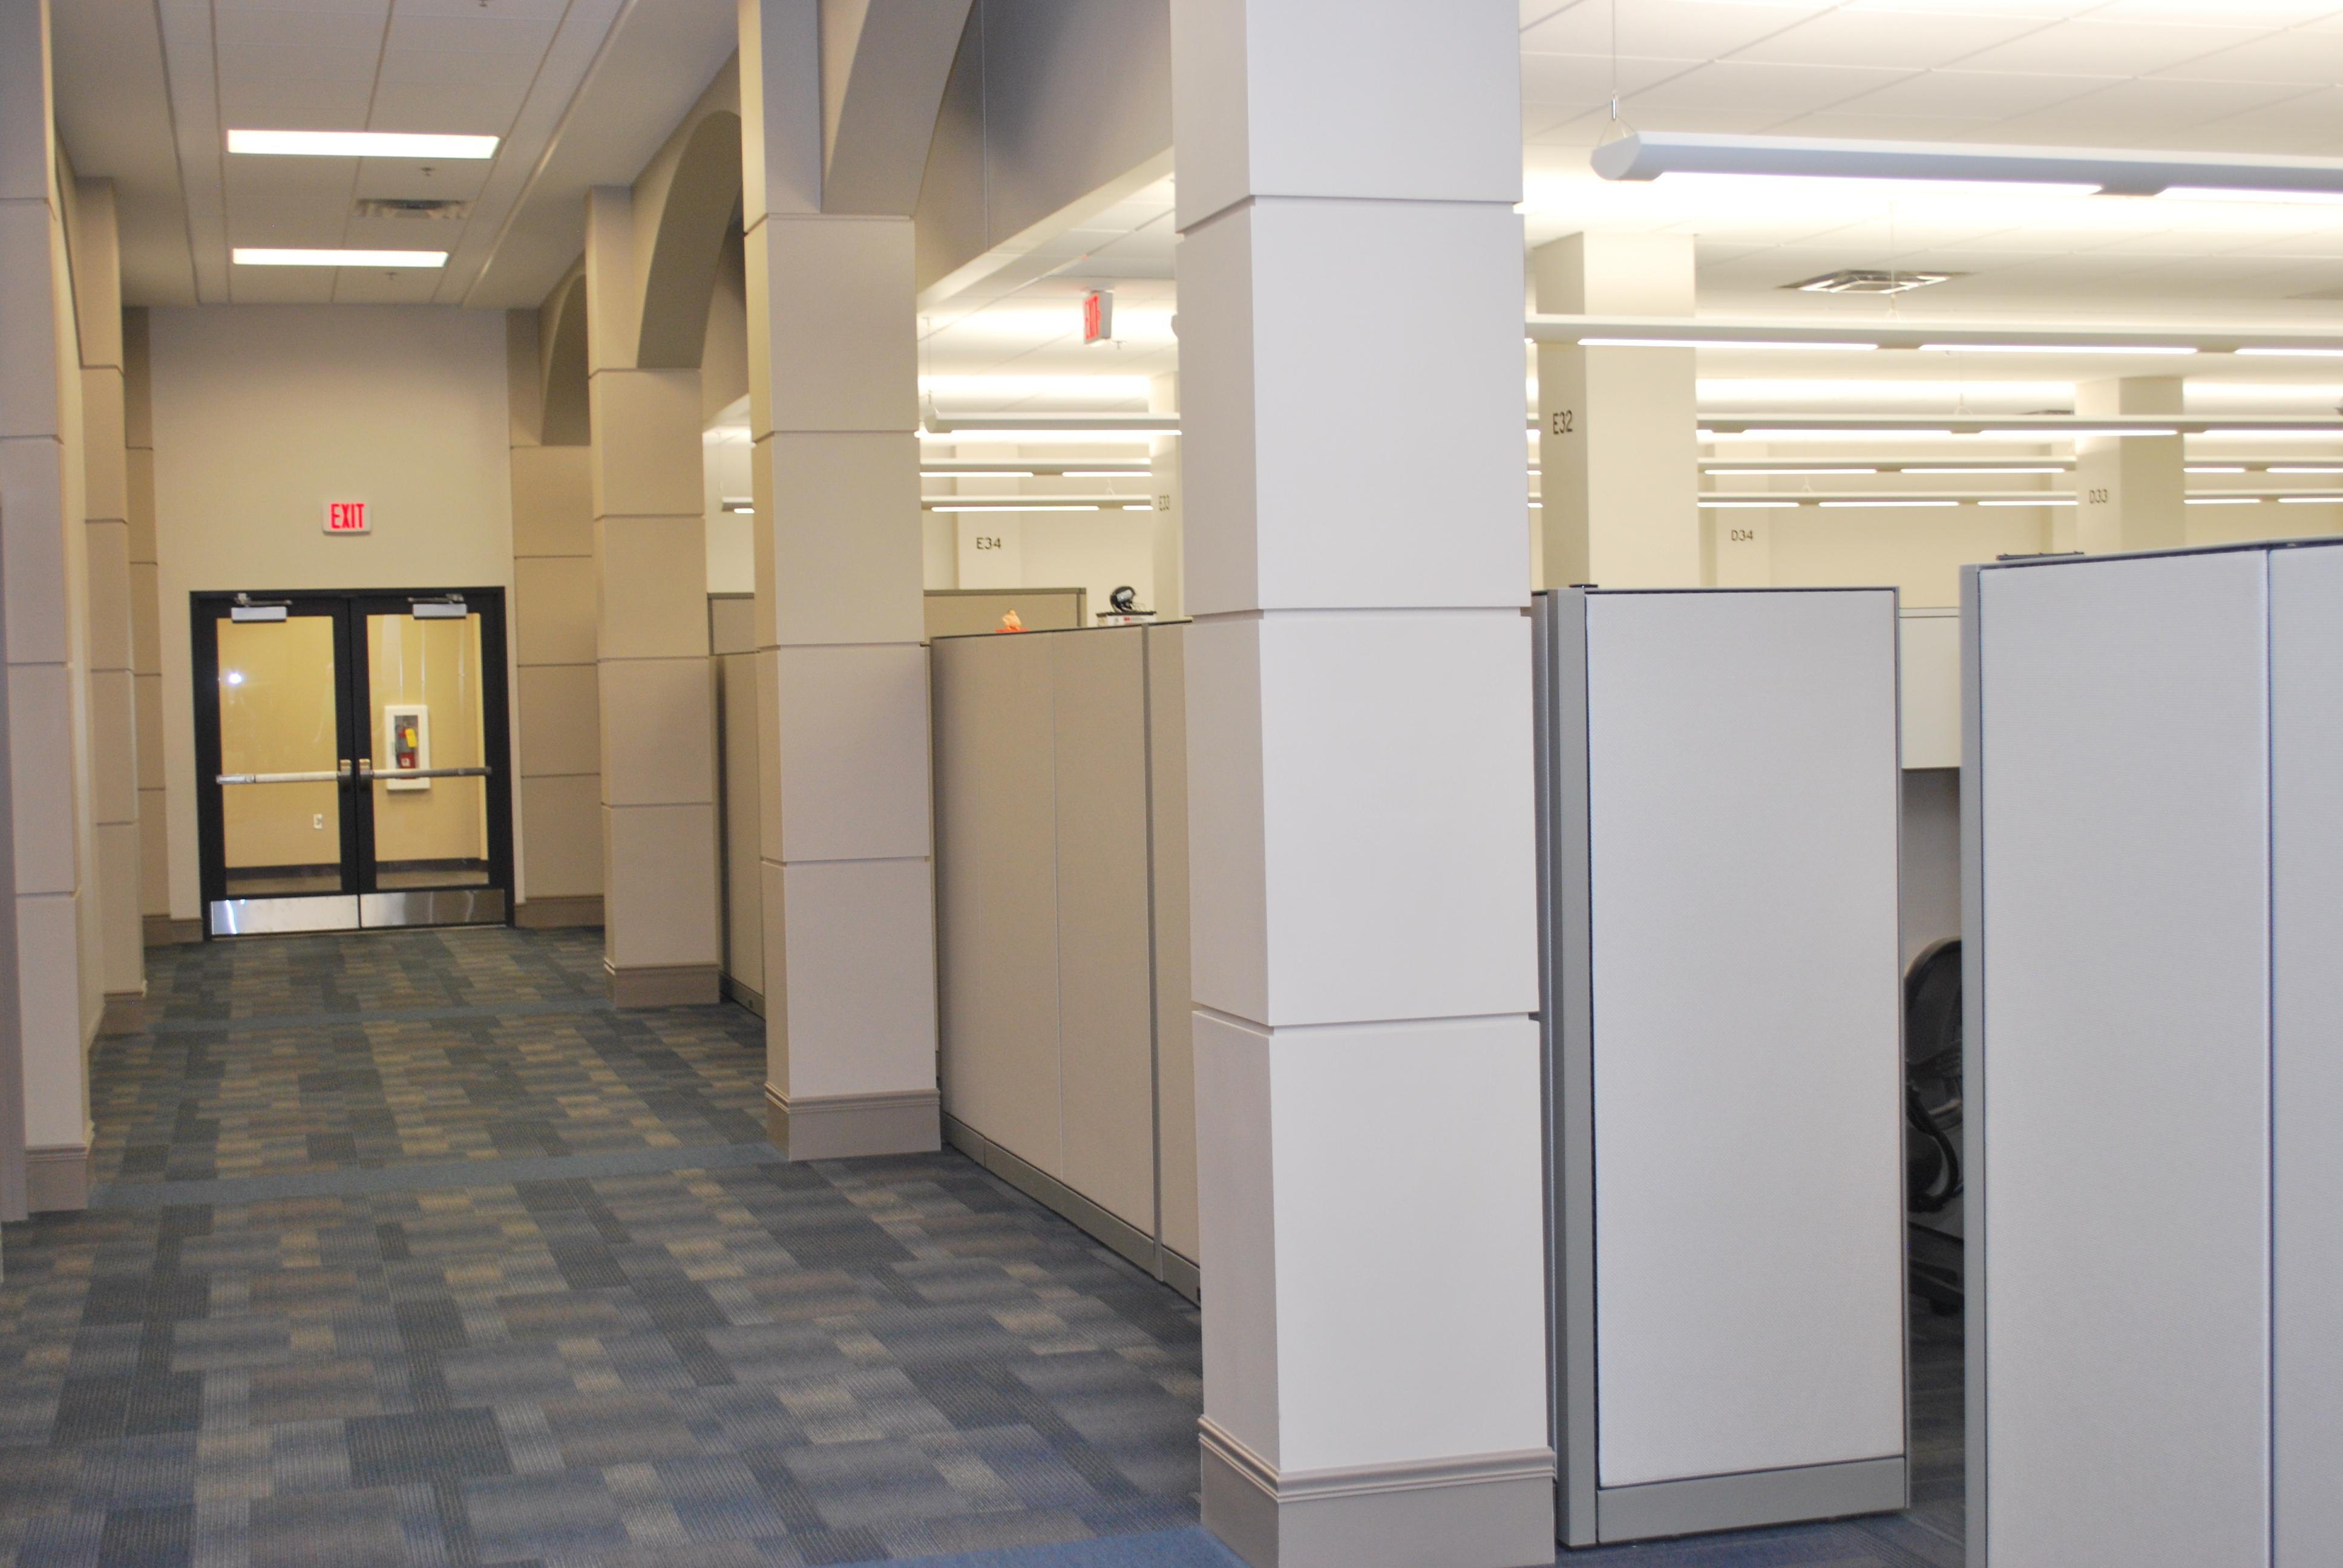 wright-patterson-airforce-base-office-hallway